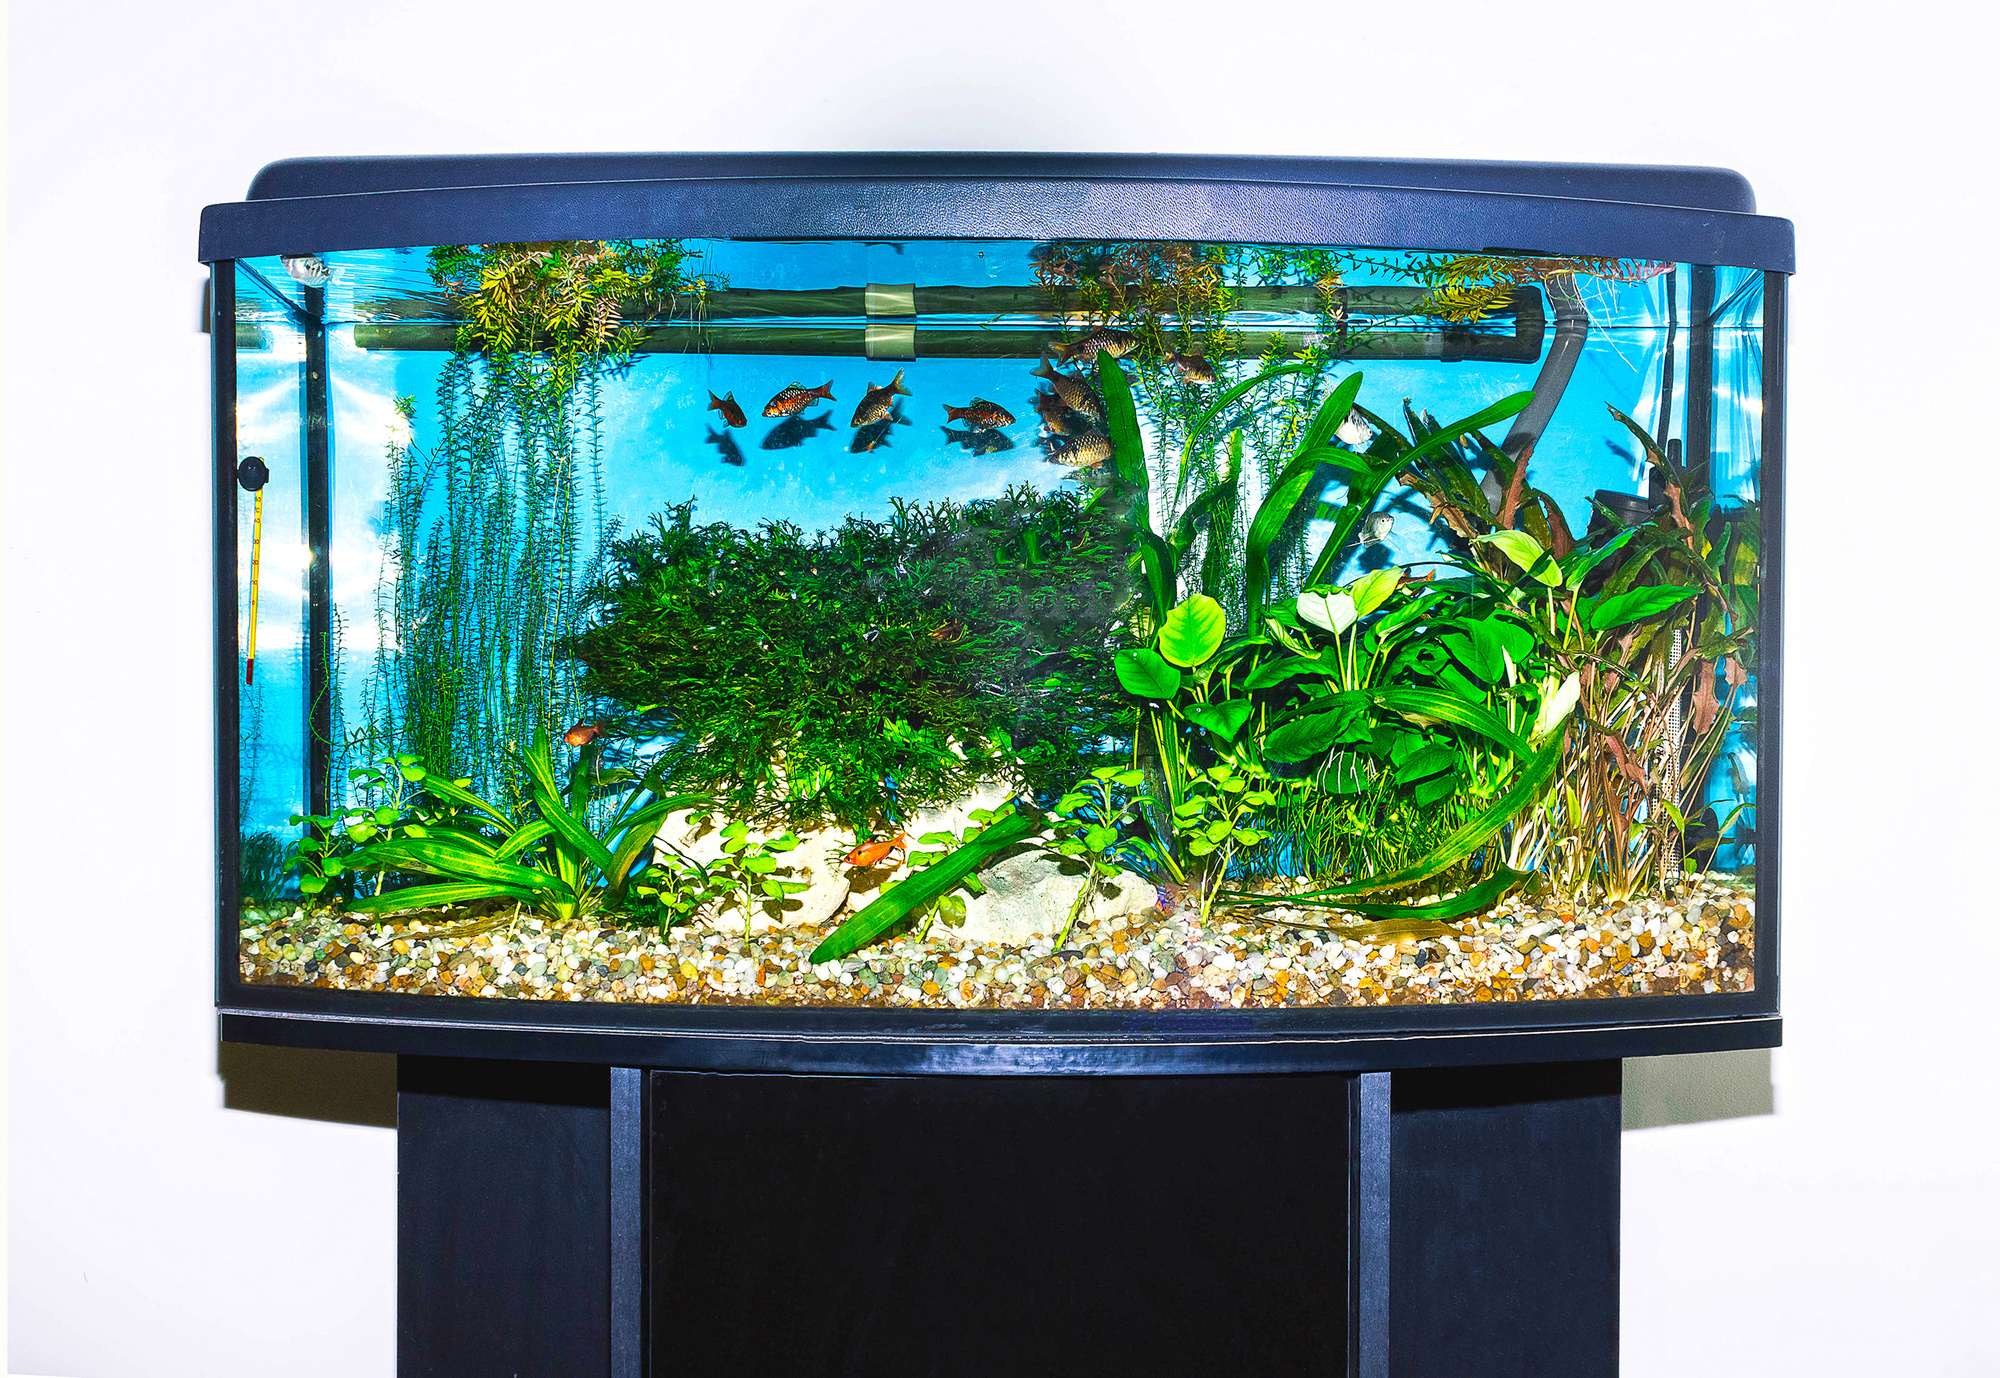 Top Ten 20 Gallon Fish Tanks for Your Home of Office